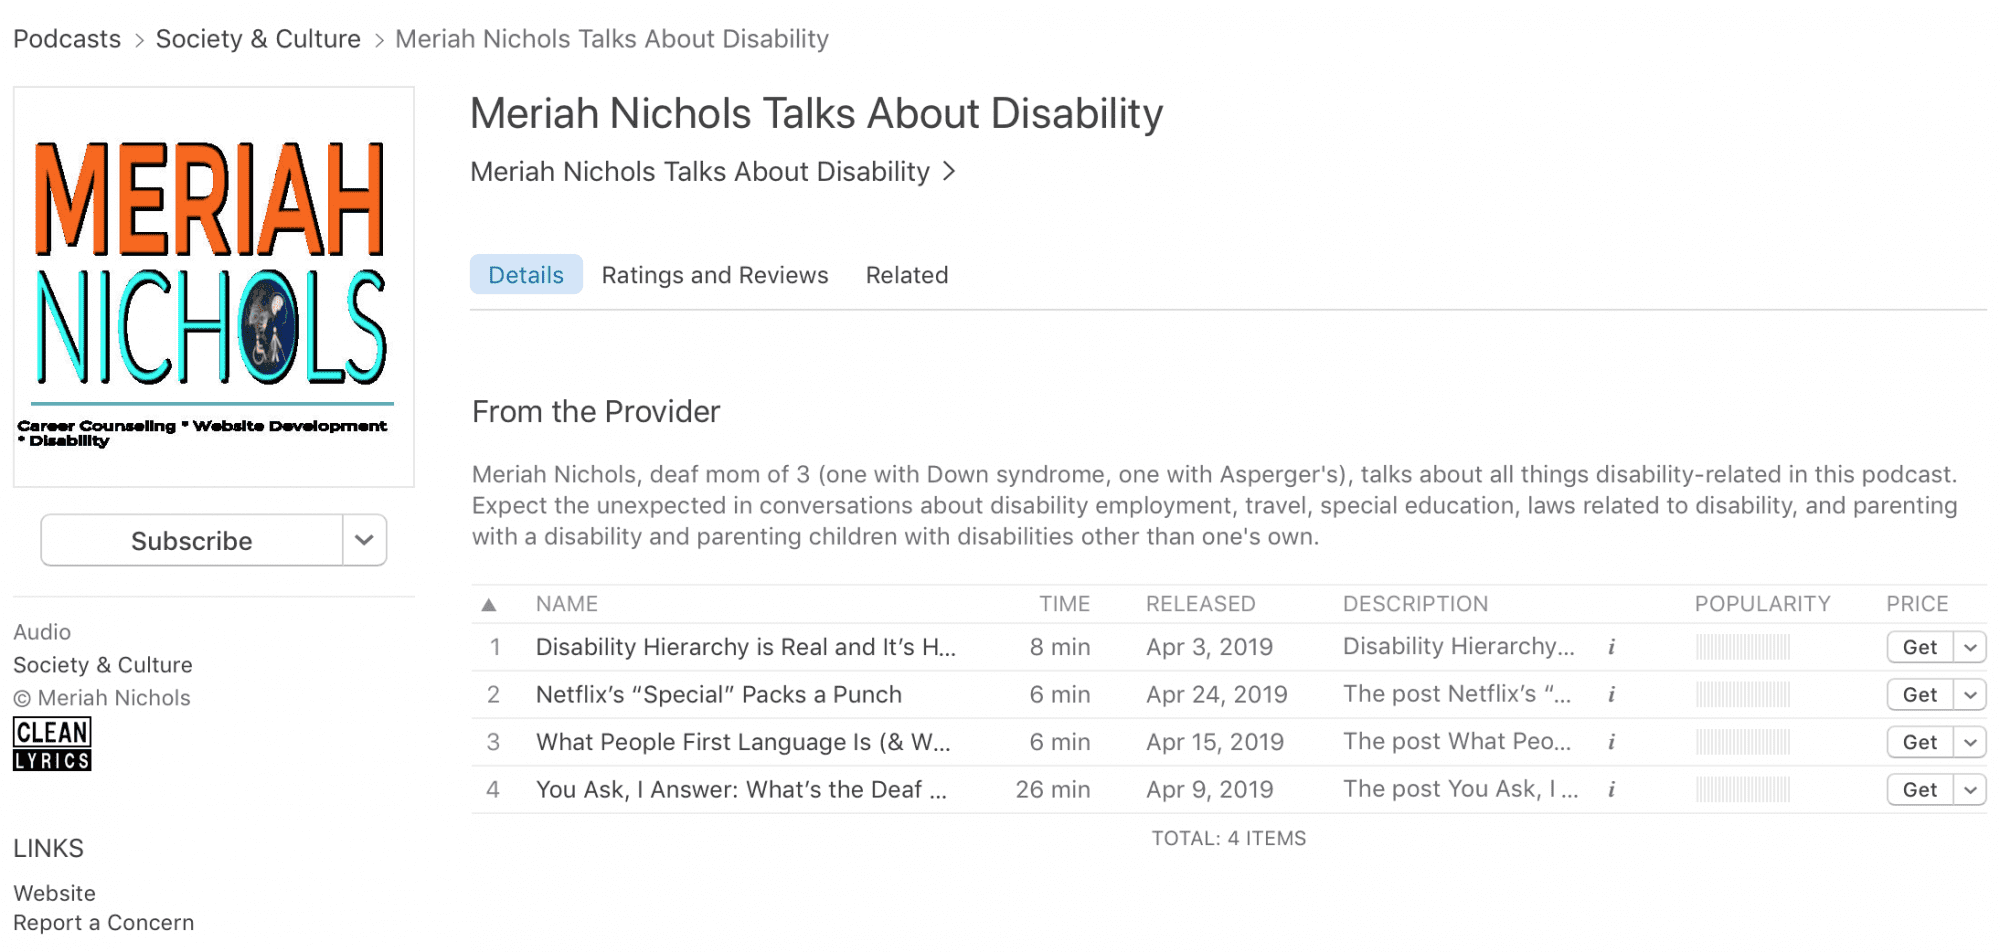 image decription of meriah nichols podcst: screenshot of the podcast information from Apple ITunes